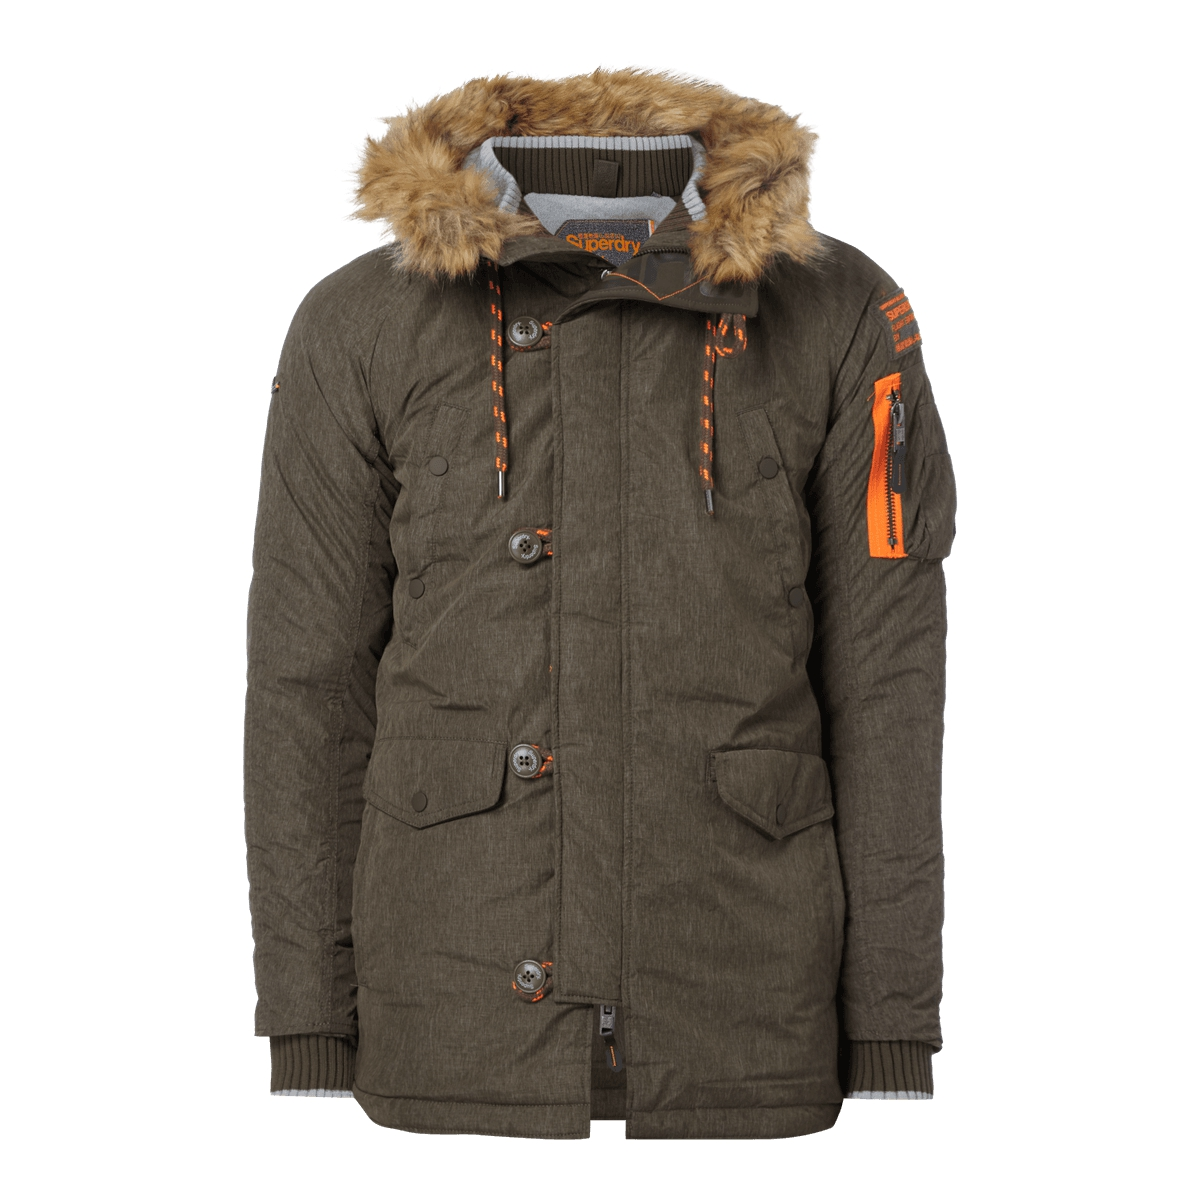 superdry parka winterjacke mit fleecefutter wattiert. Black Bedroom Furniture Sets. Home Design Ideas